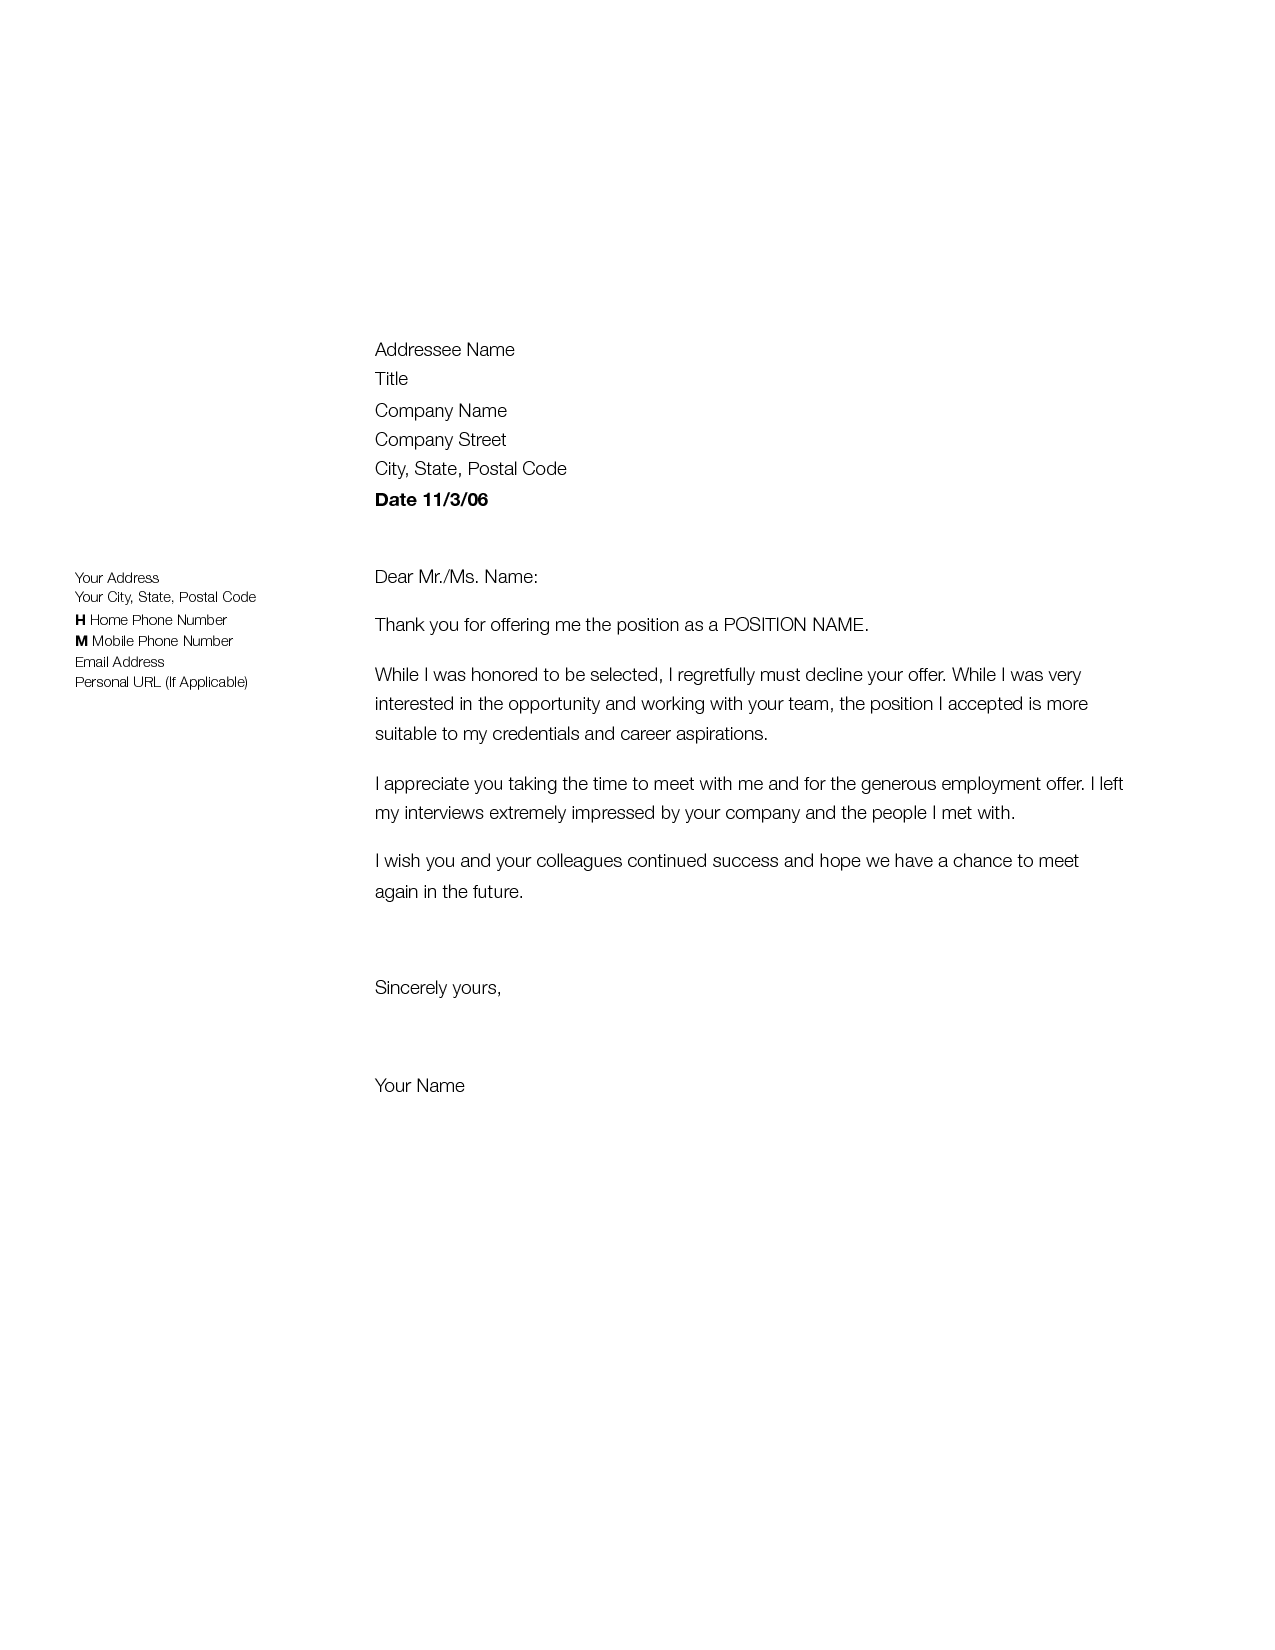 Job Decline Letter sample employment rejection letter to let an